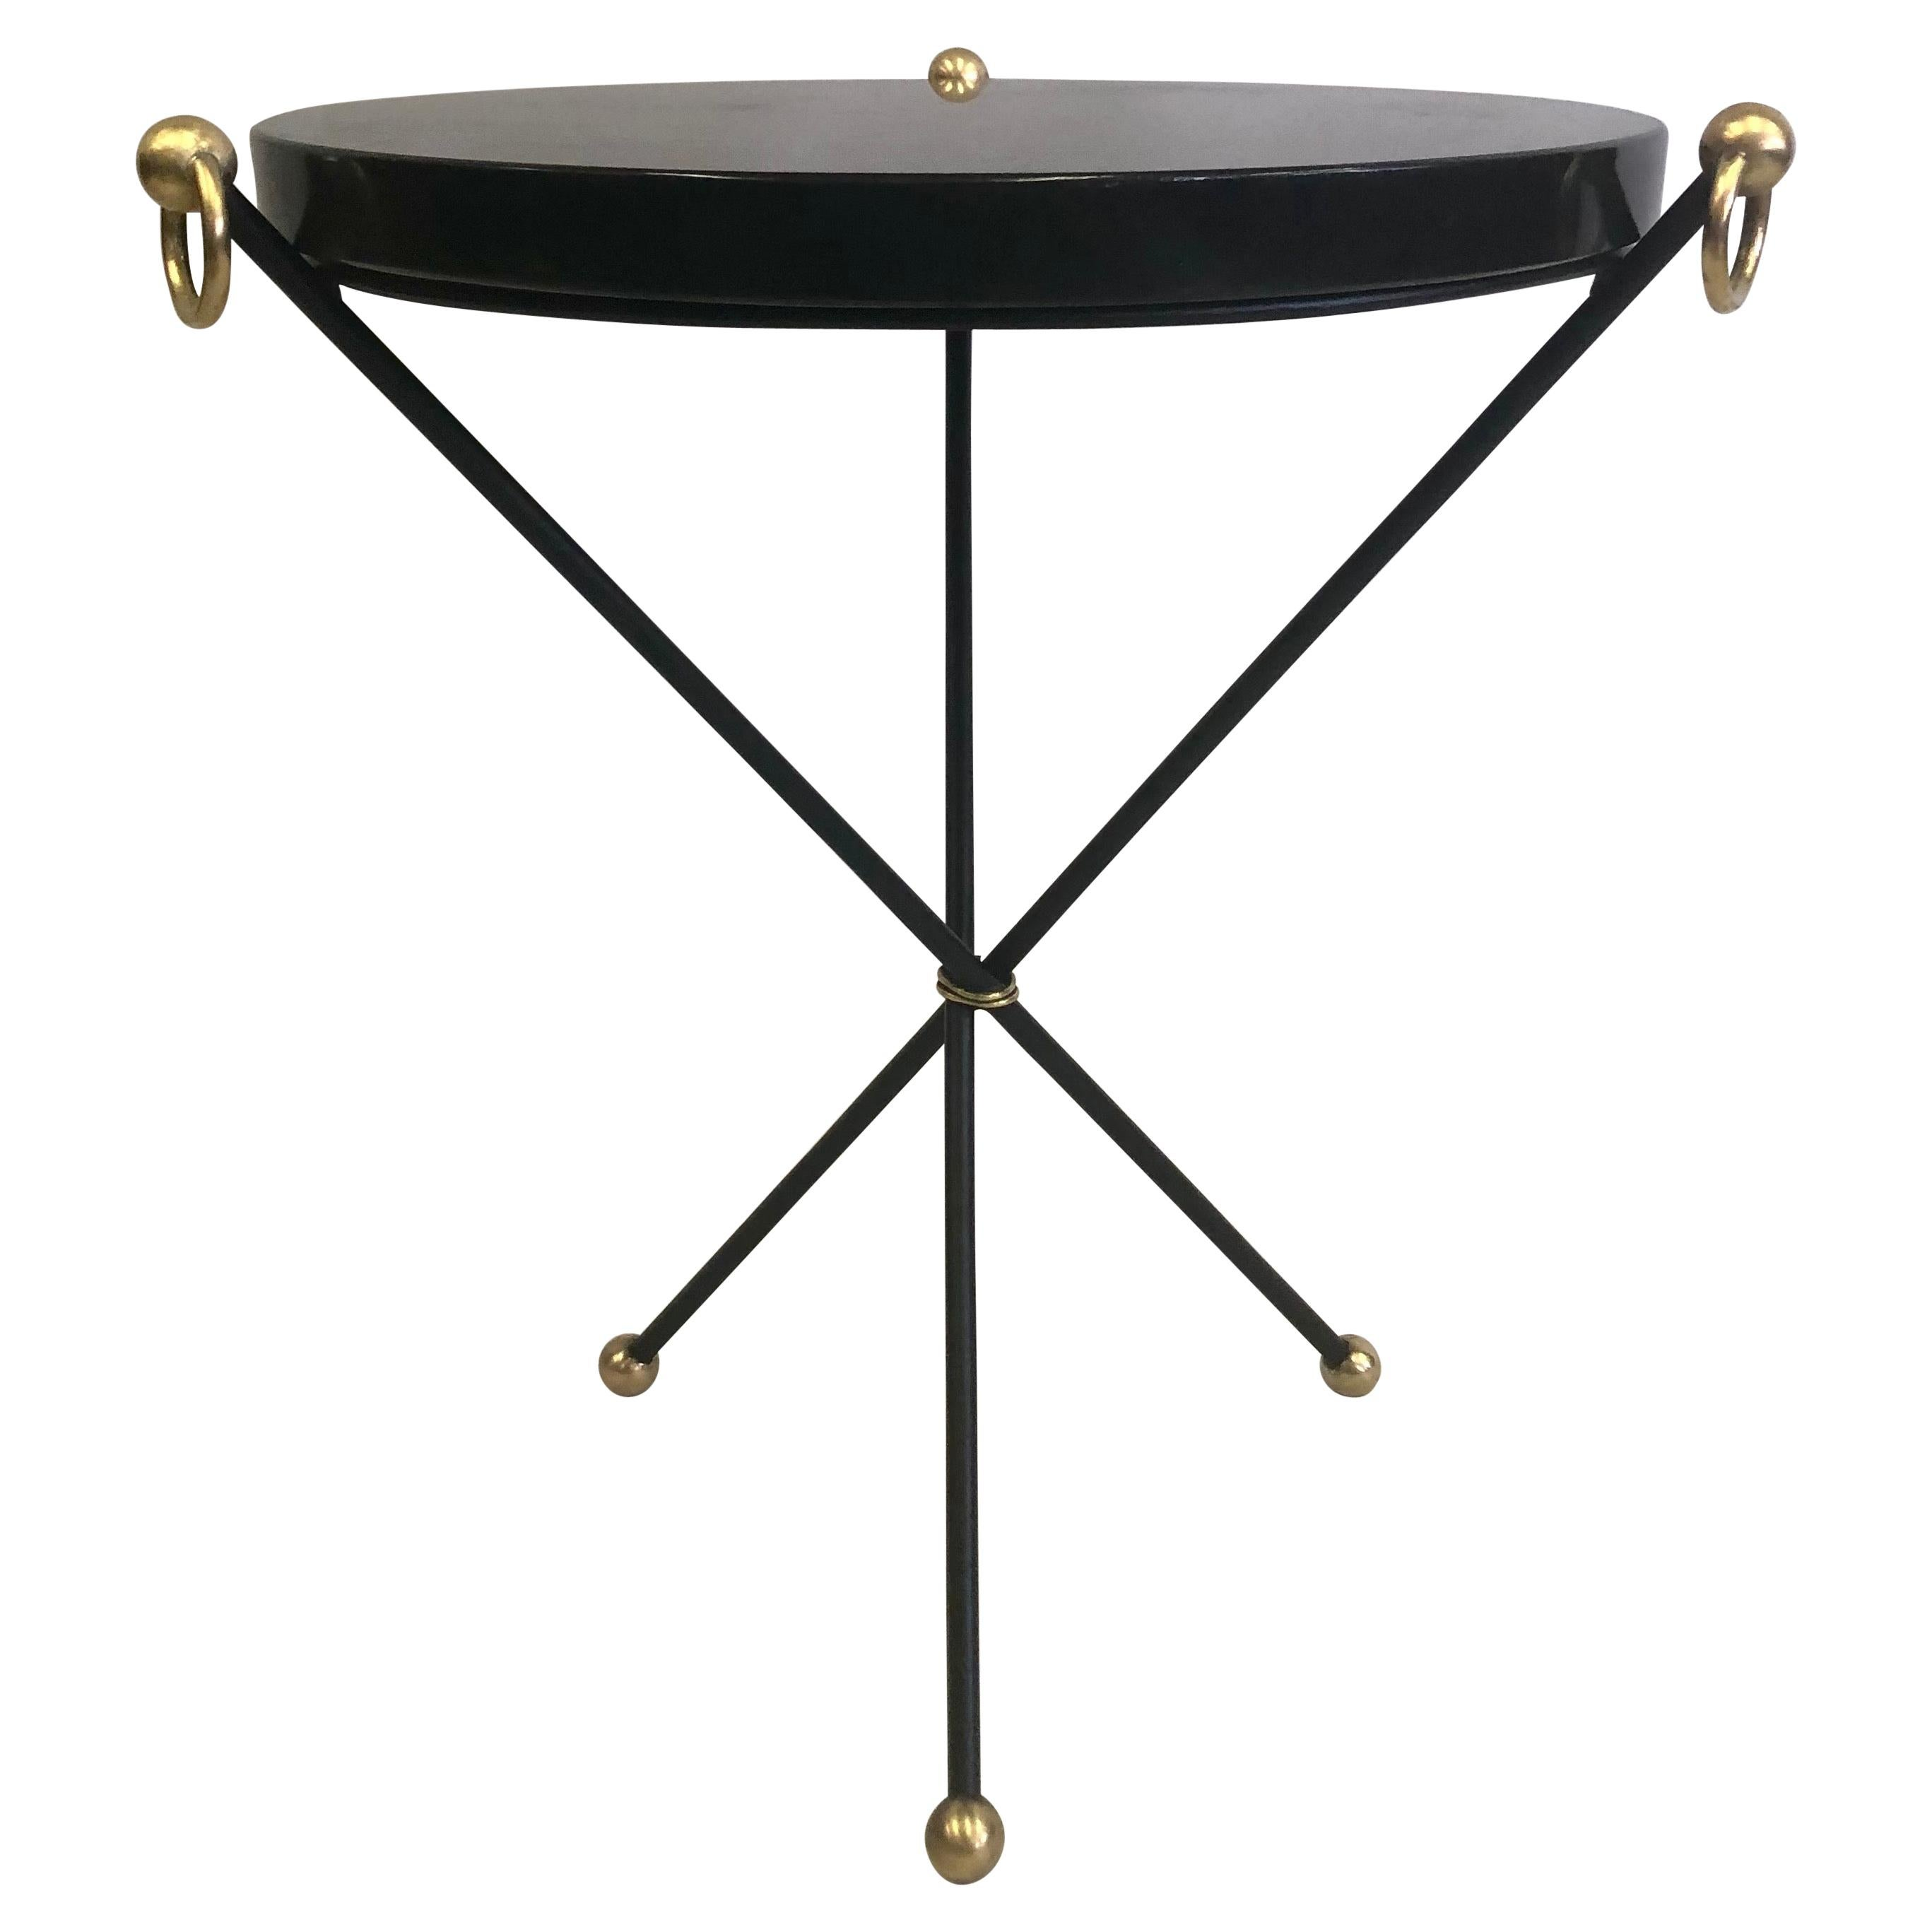 French Modern Neoclassical Iron, Brass & Stone Side Table Attr. to Jacques Adnet